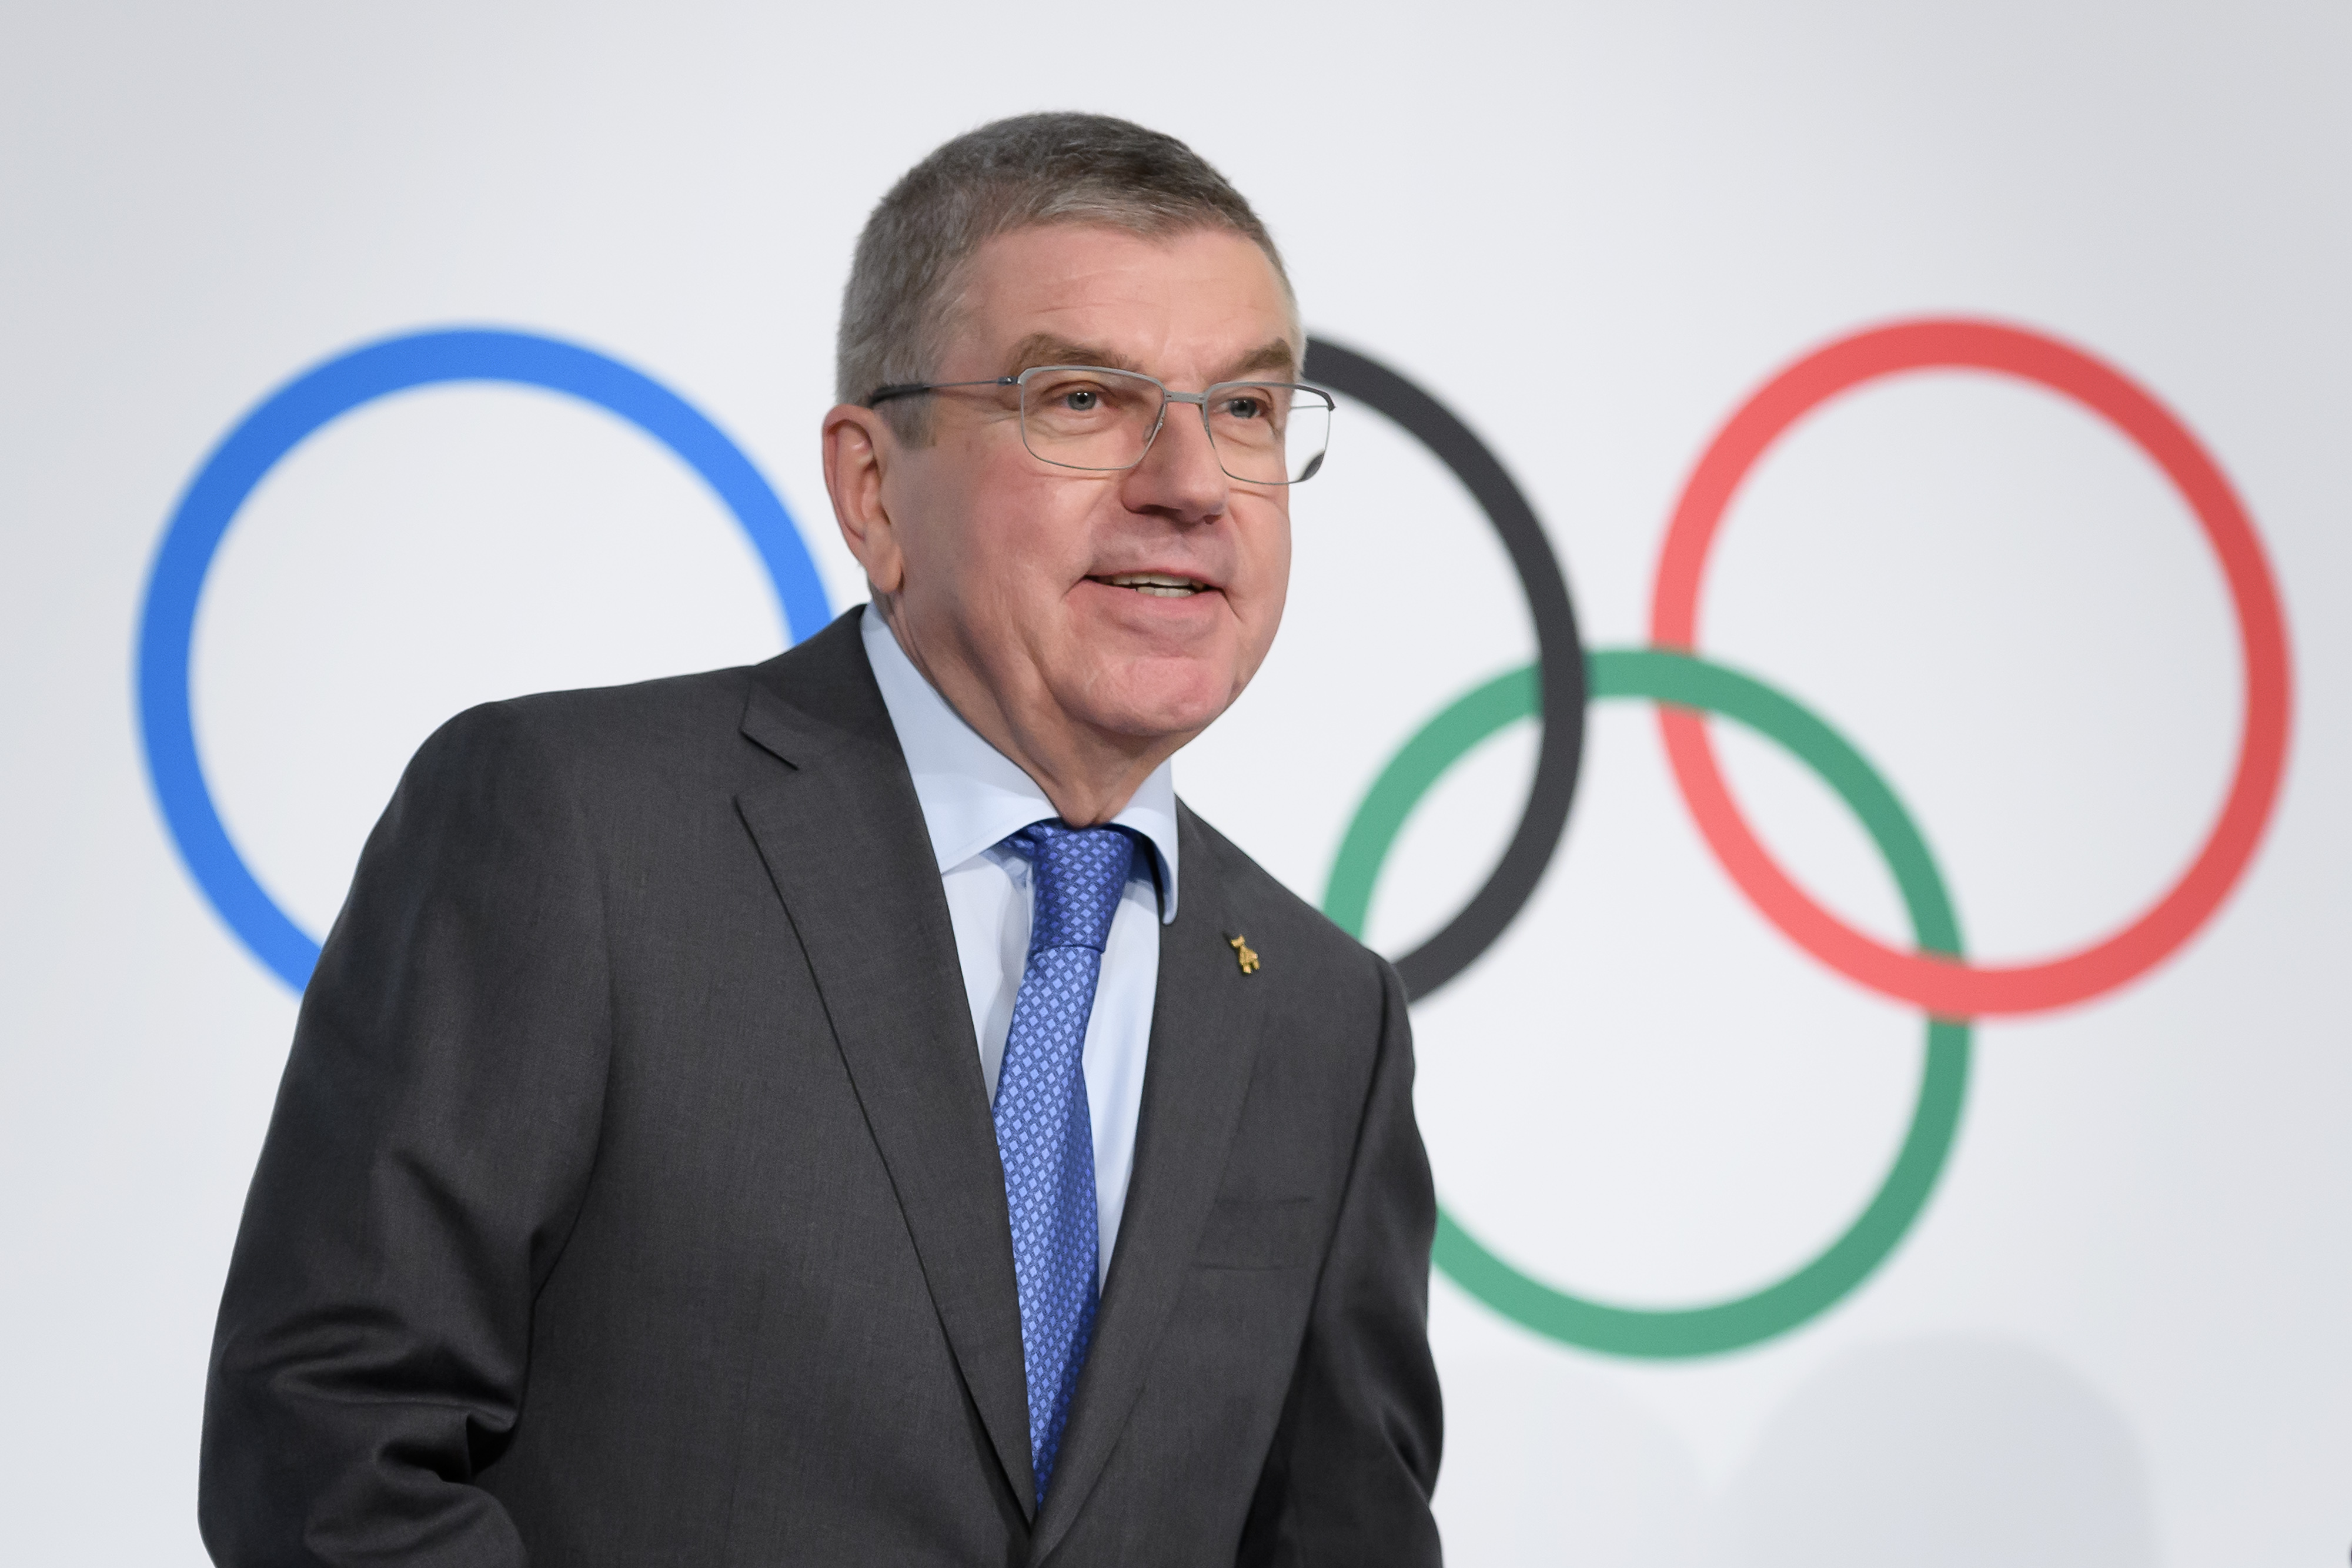 International Olympic Committee (IOC) president Thomas Bach arrives to a press conference following an executive board meeting at the IOC headquarters in Lausanne, on December 5, 2019. - The Russian case will dominate the IOC Executive Board meeting a few days before the decision of the World Anti-Doping Agency (WADA) expected on December 9, following a recommendation by an independent WADA committee paving the way for Russia to be suspended from the next Olympic Games. (Photo by FABRICE COFFRINI/AFP via Getty Images)